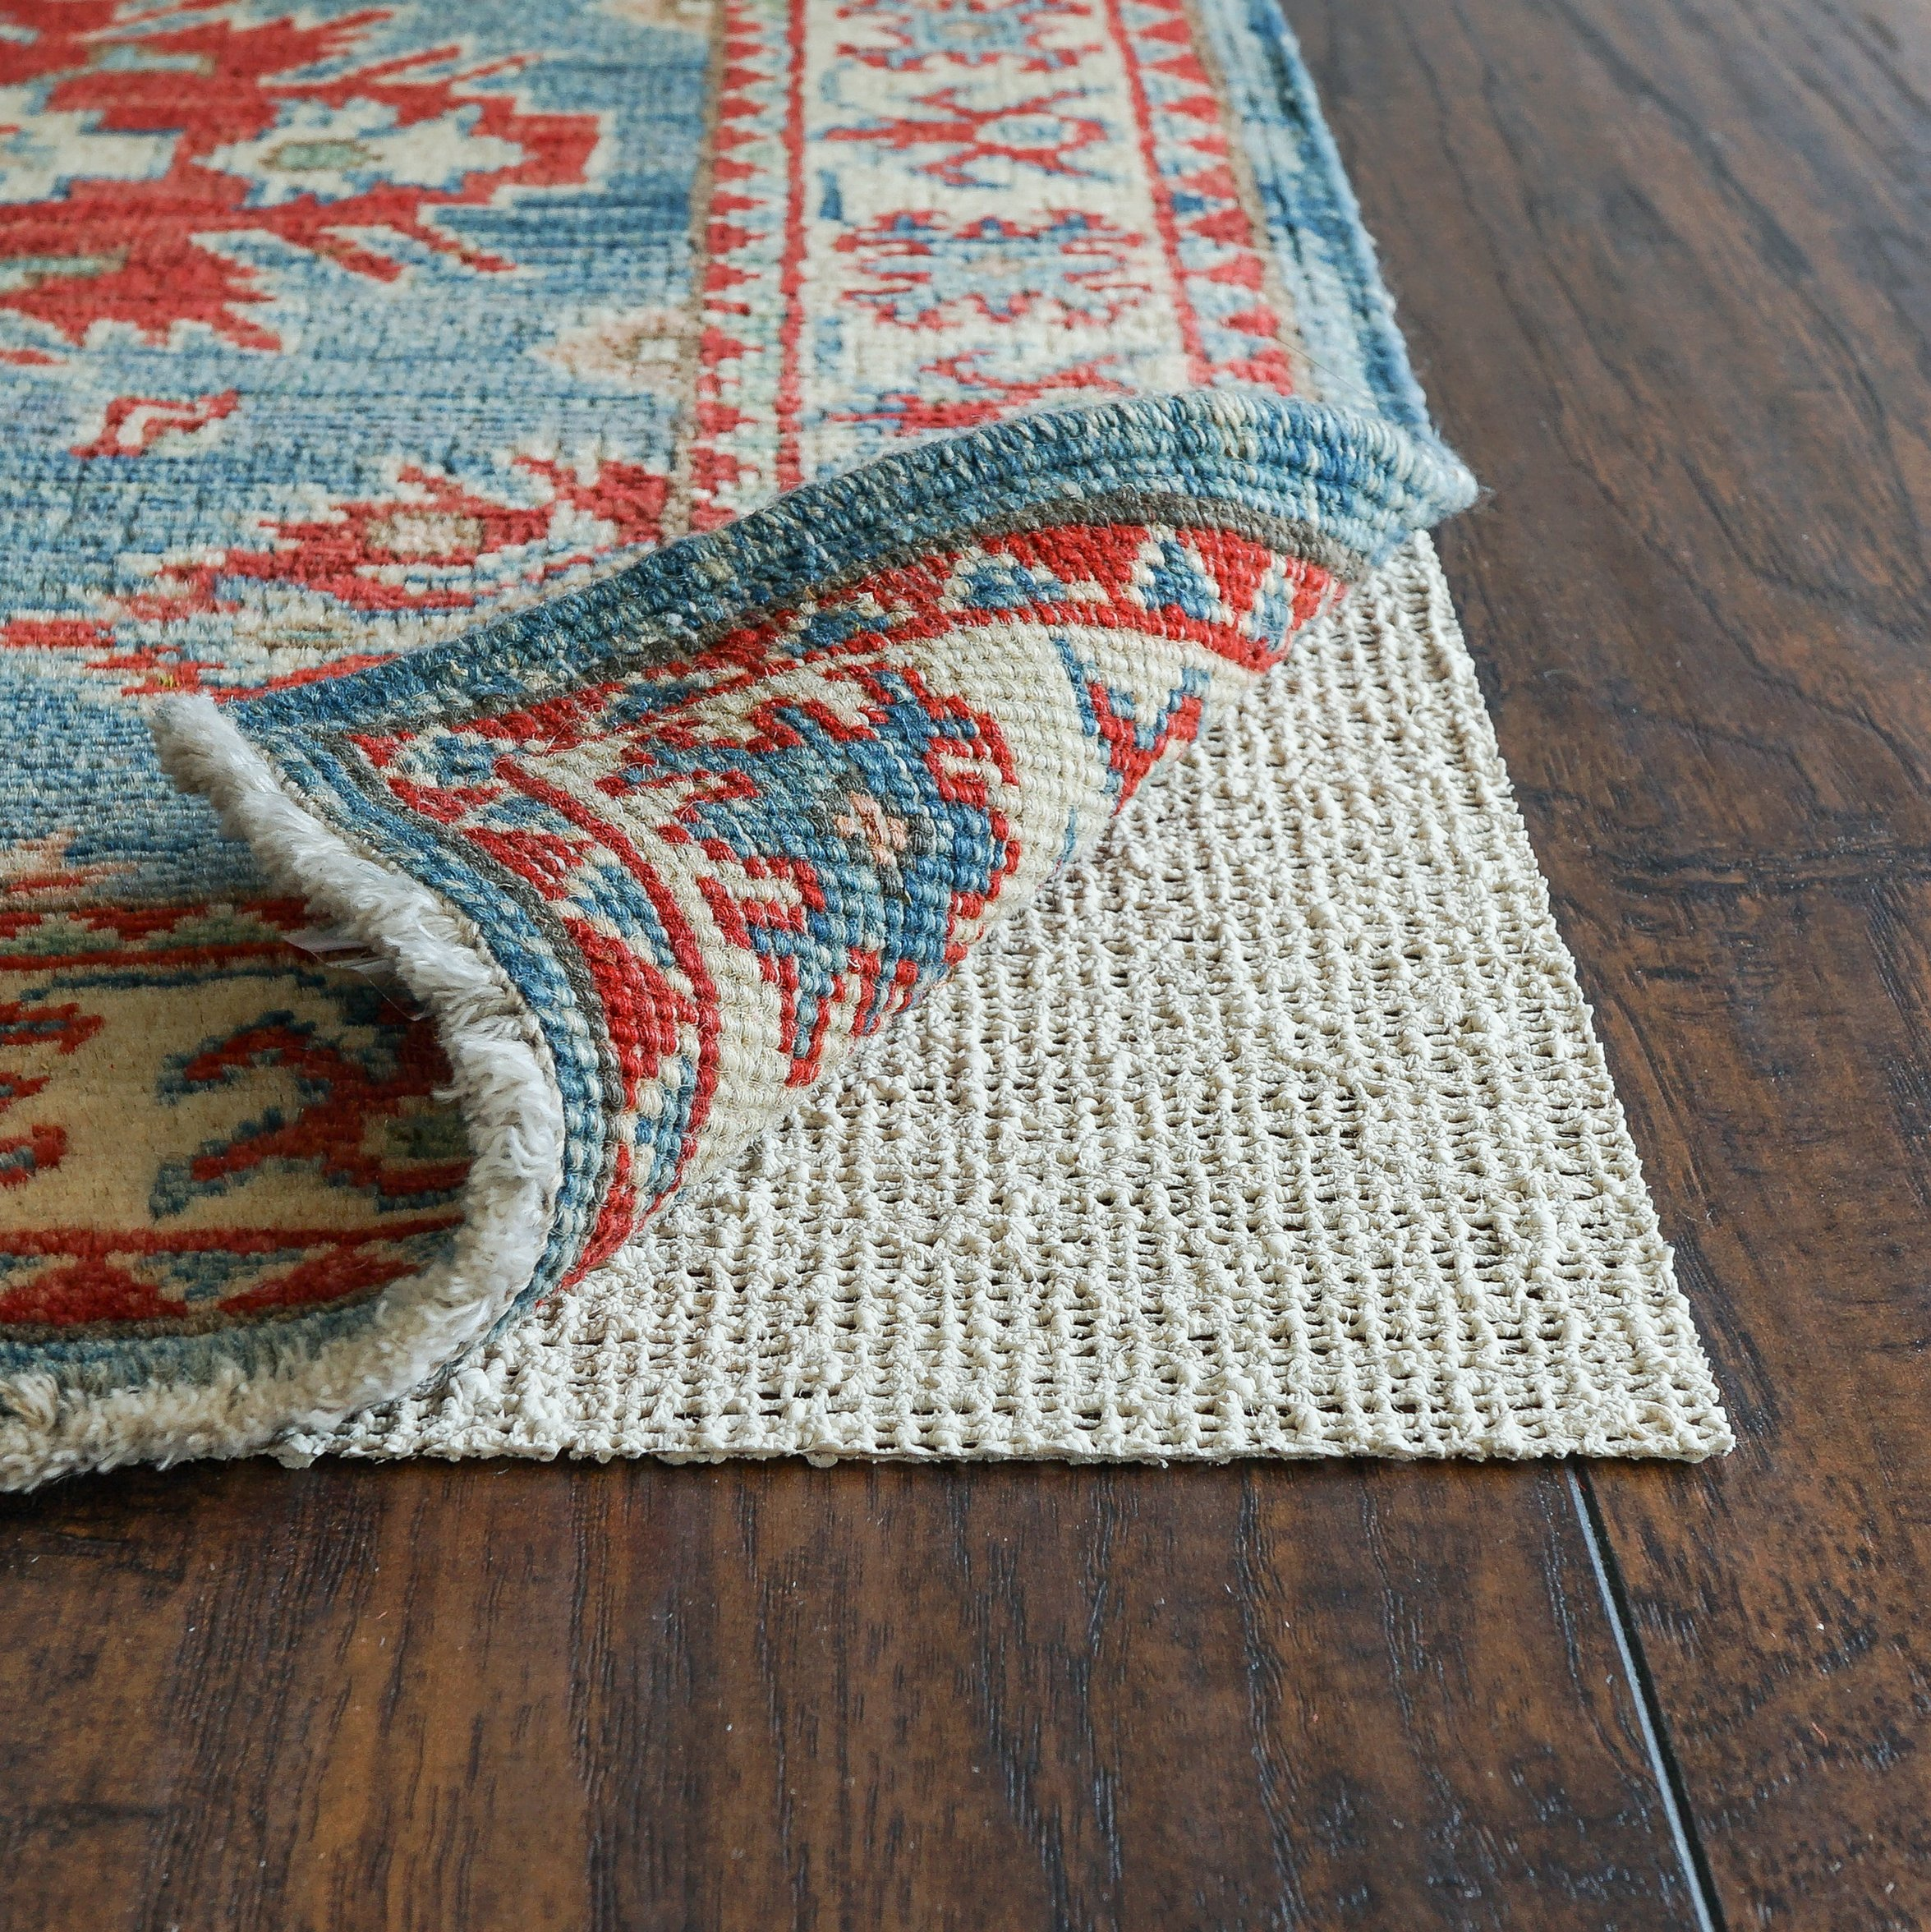 Rug Pad USA, Nature's Grip, Eco-Friendly Jute & Natural Rubber Non-Slip Rug Pads, 5' x 7'